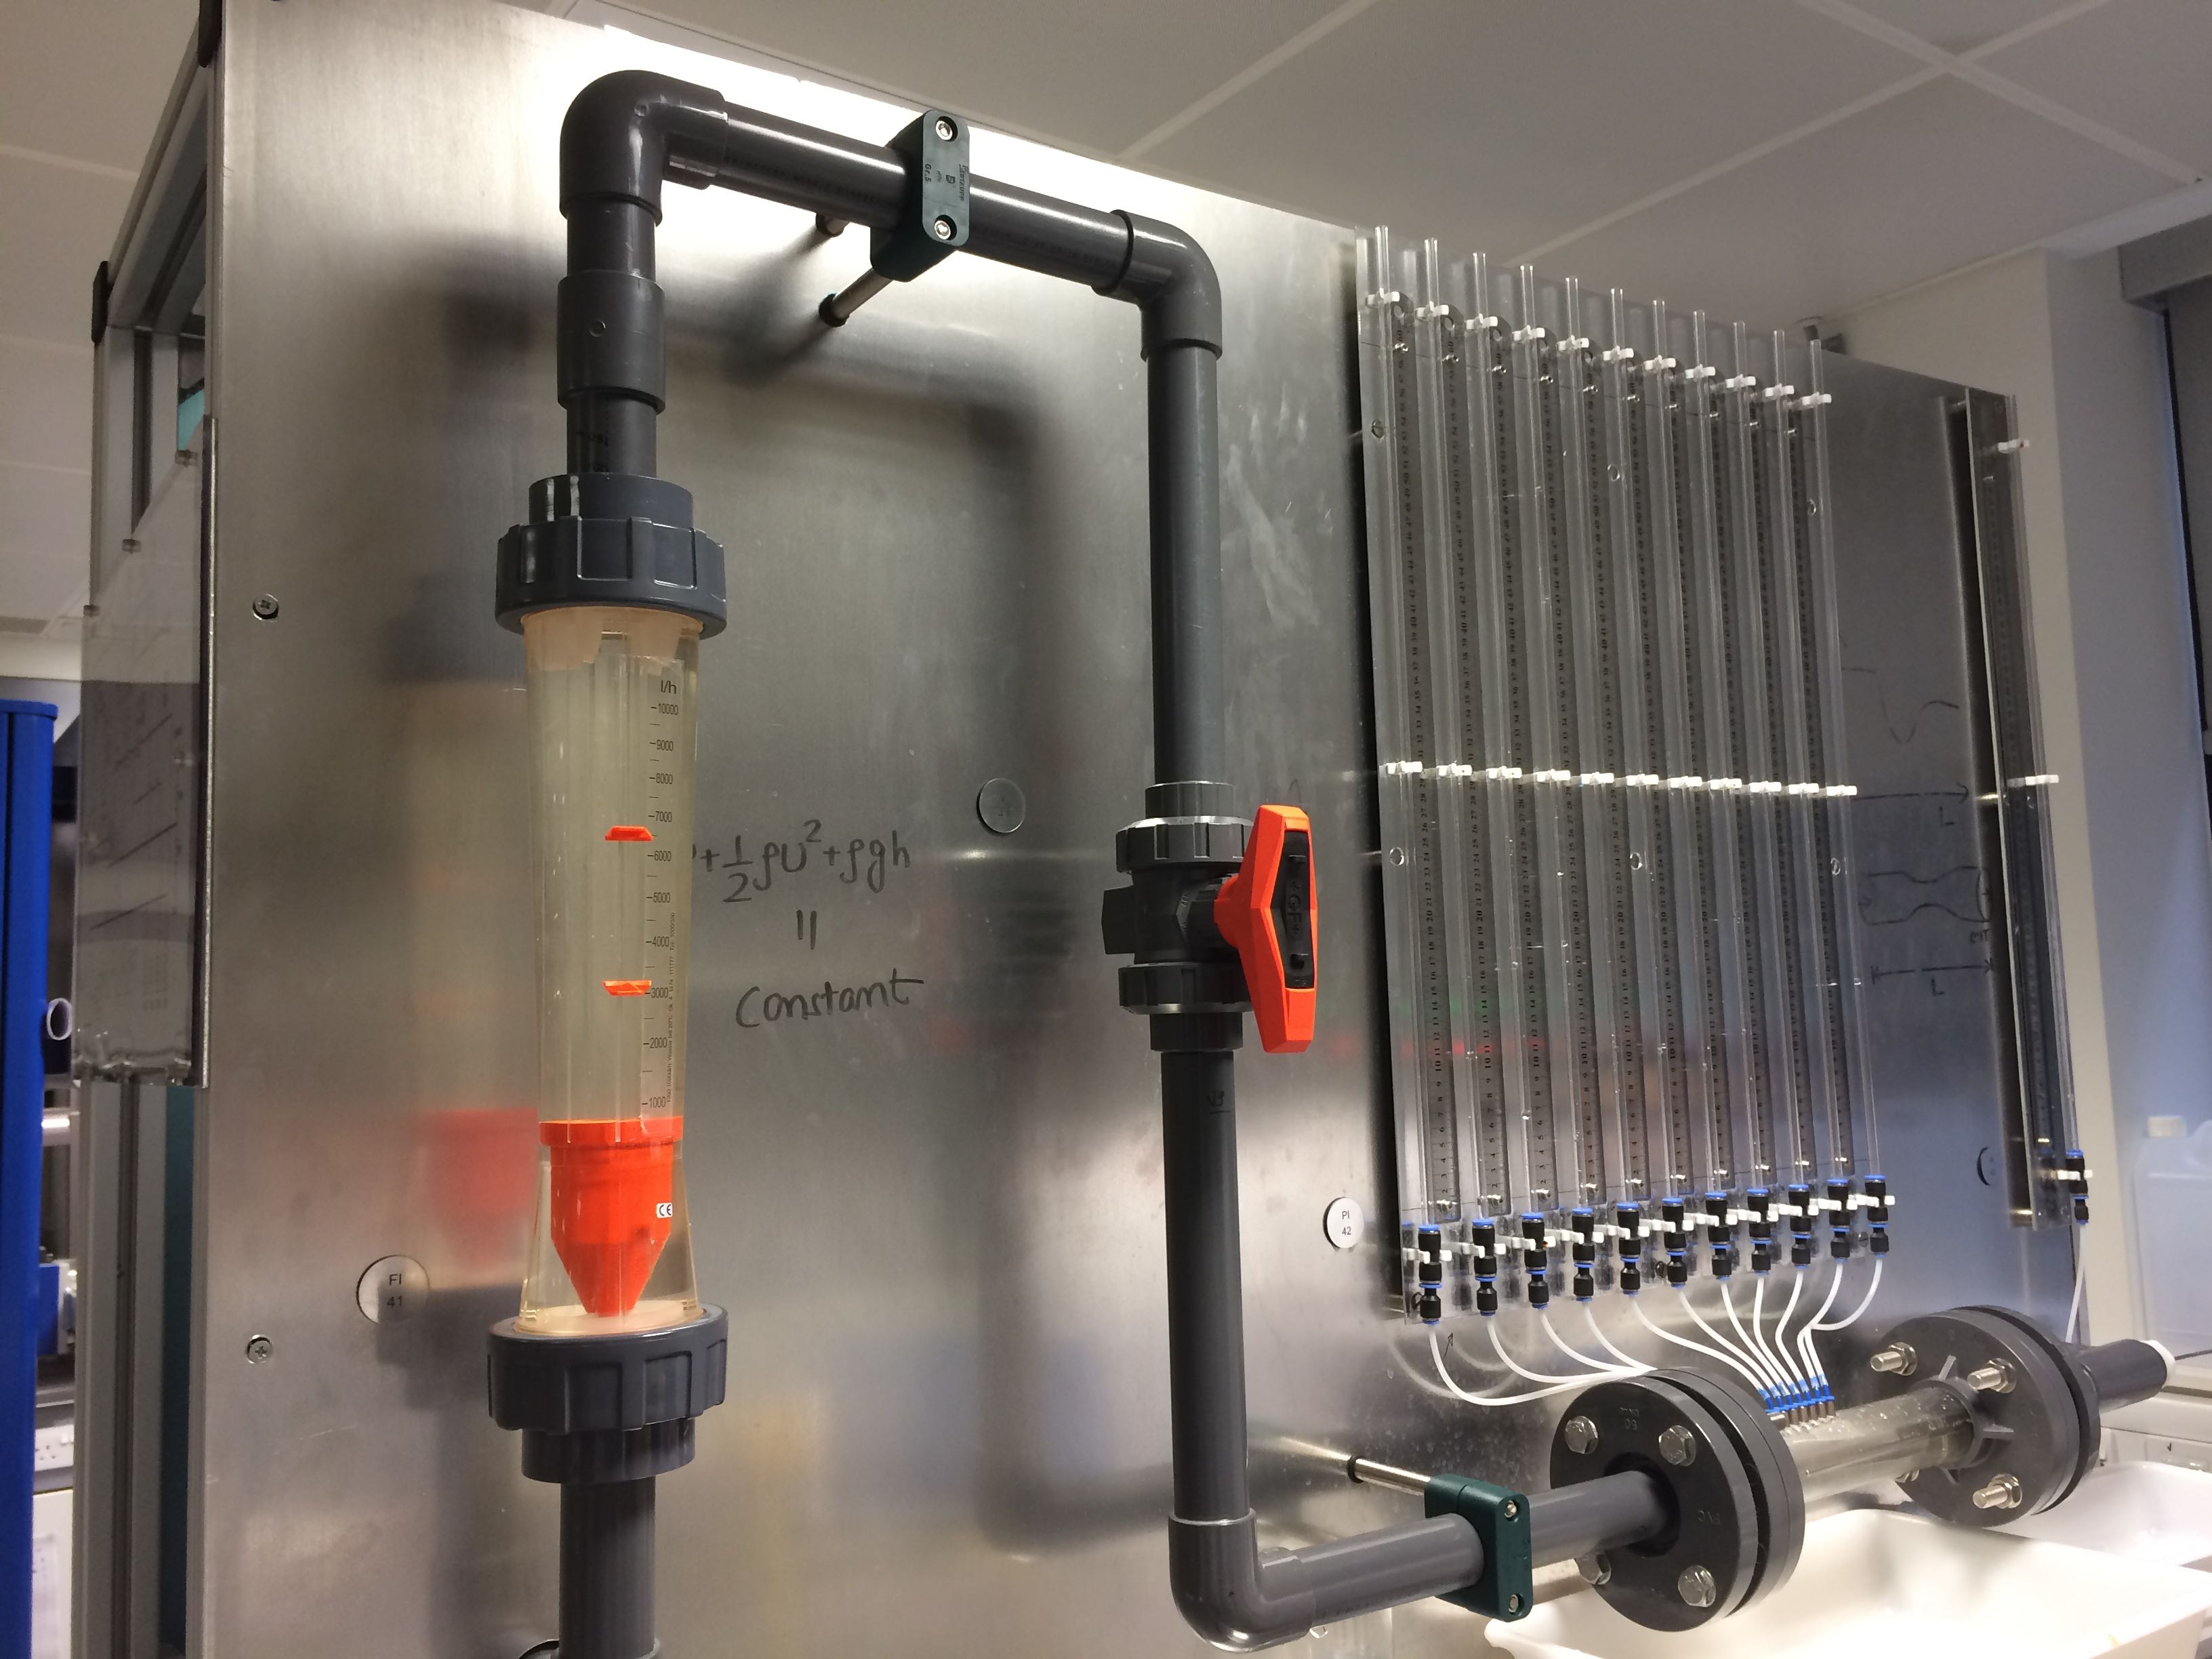 Venturi tube and rota meter. All about the flow...